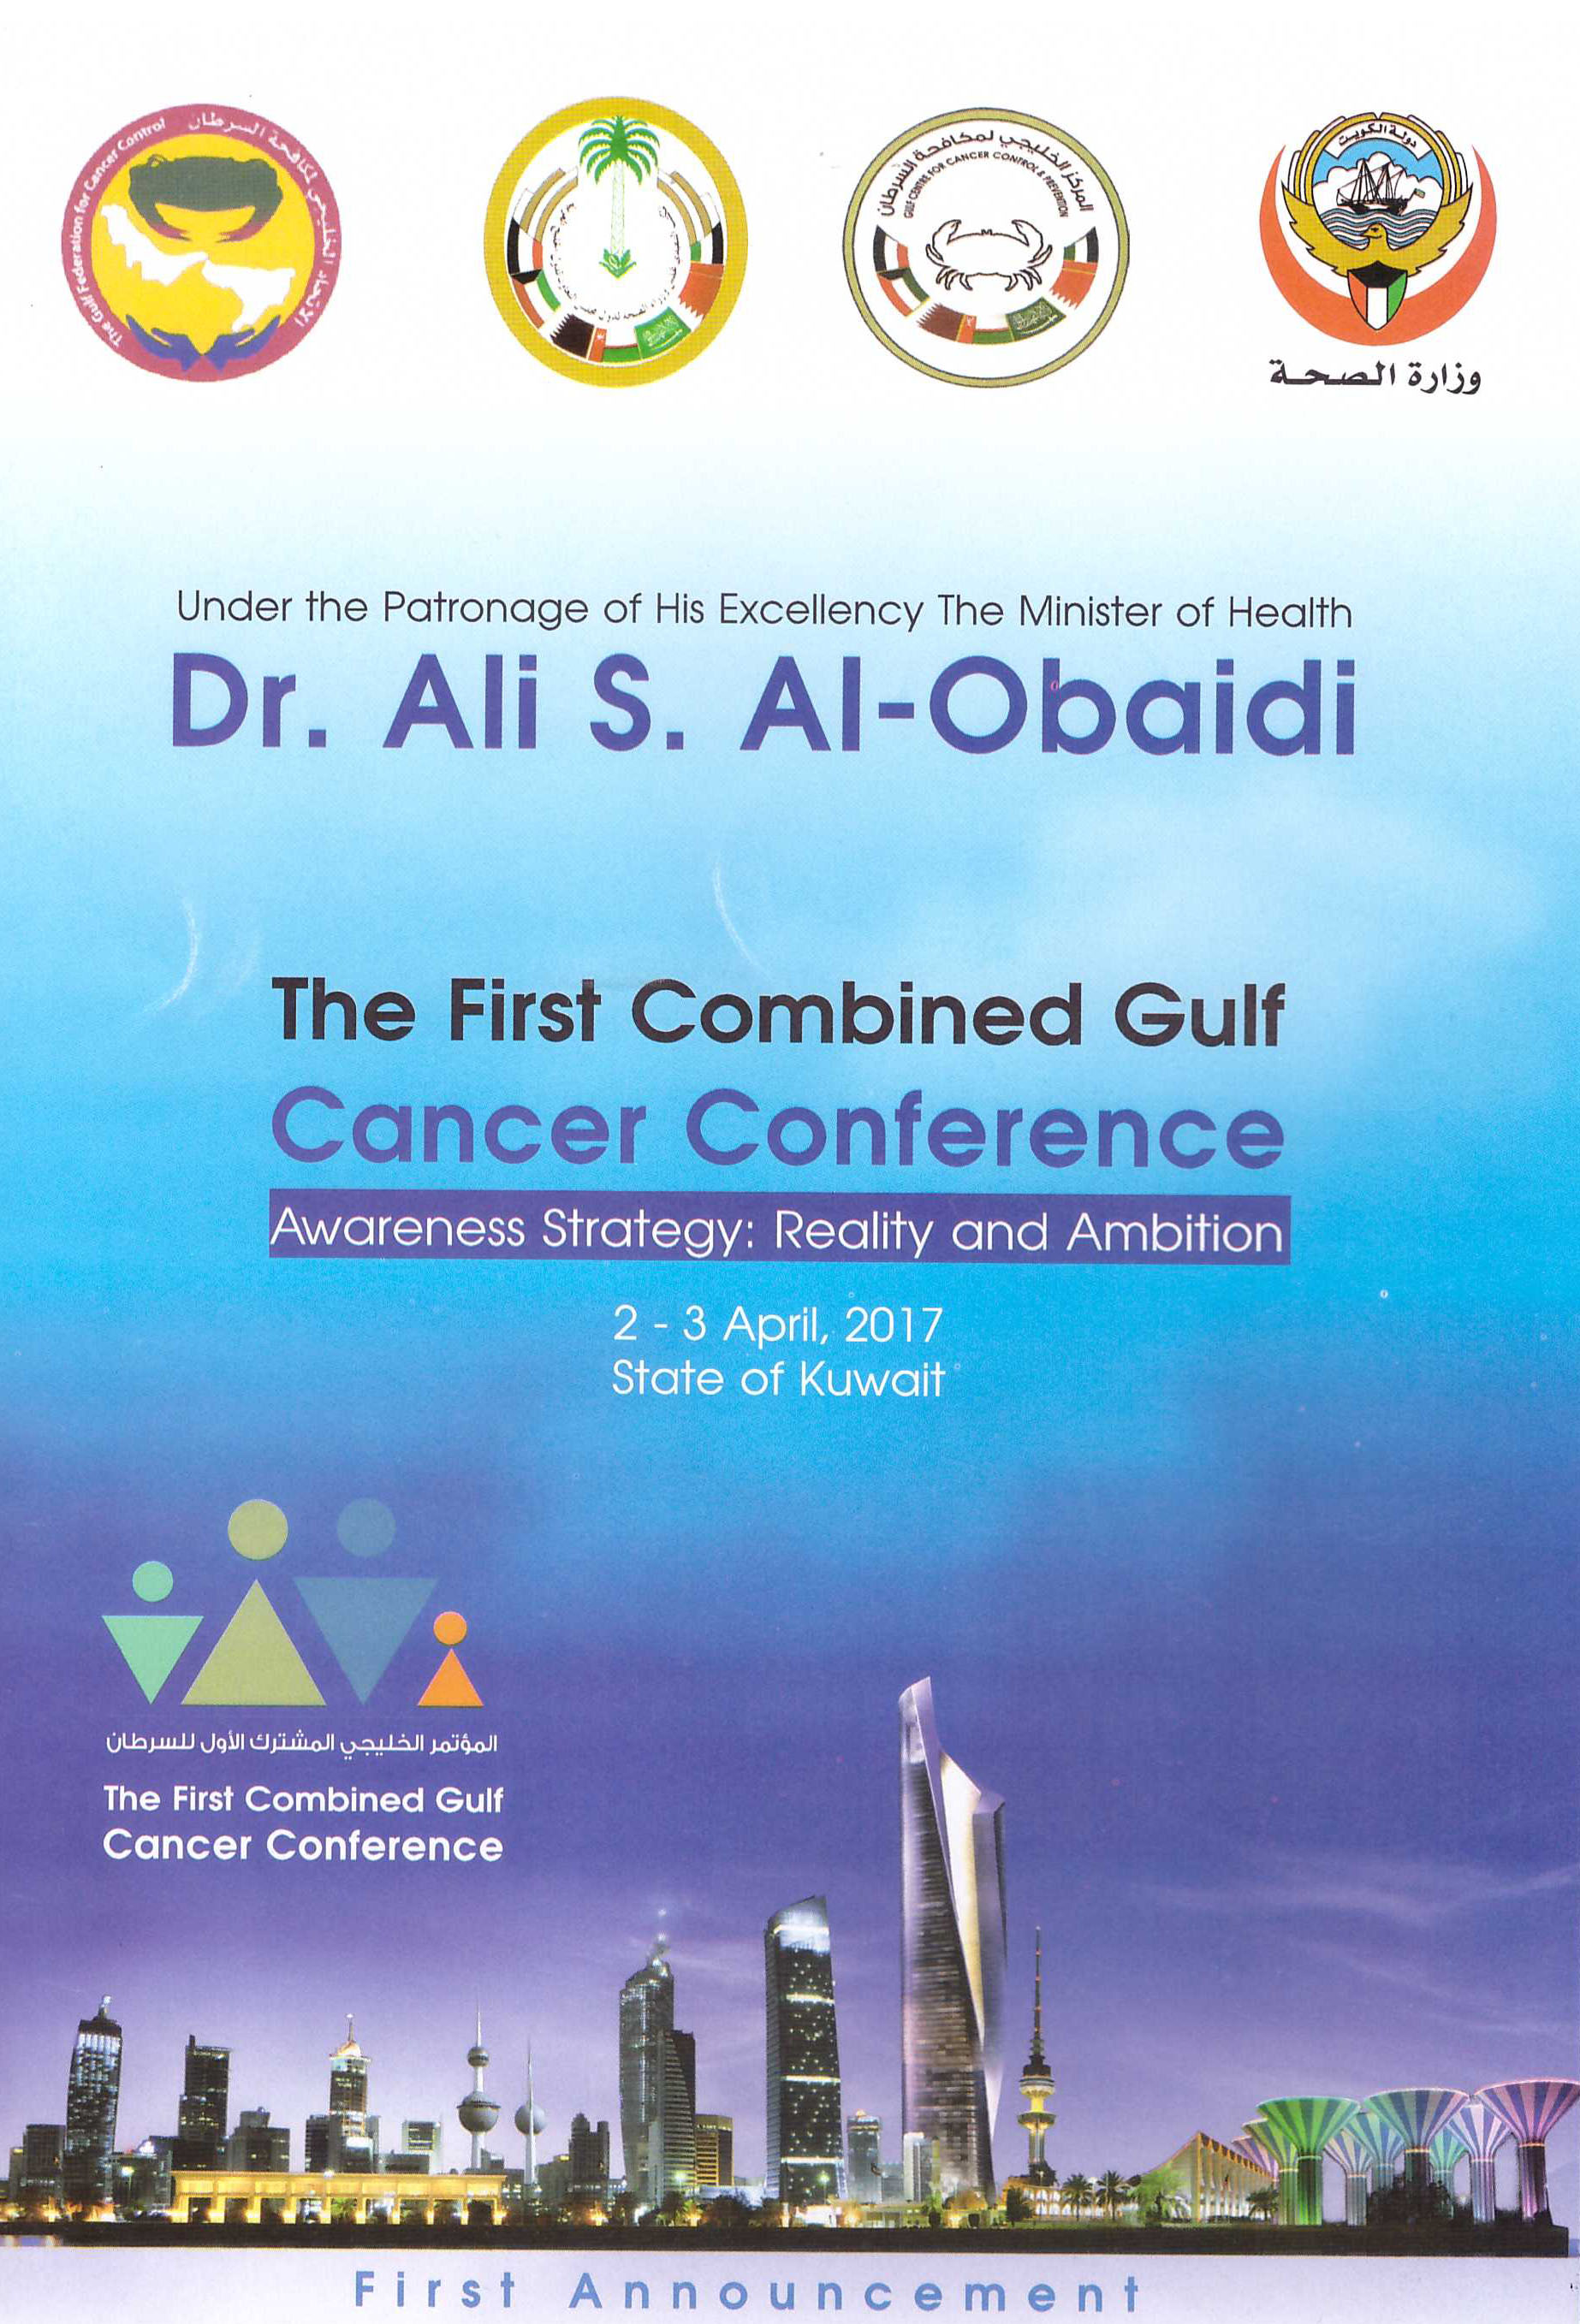 First Combined Gulf Cancer Conference